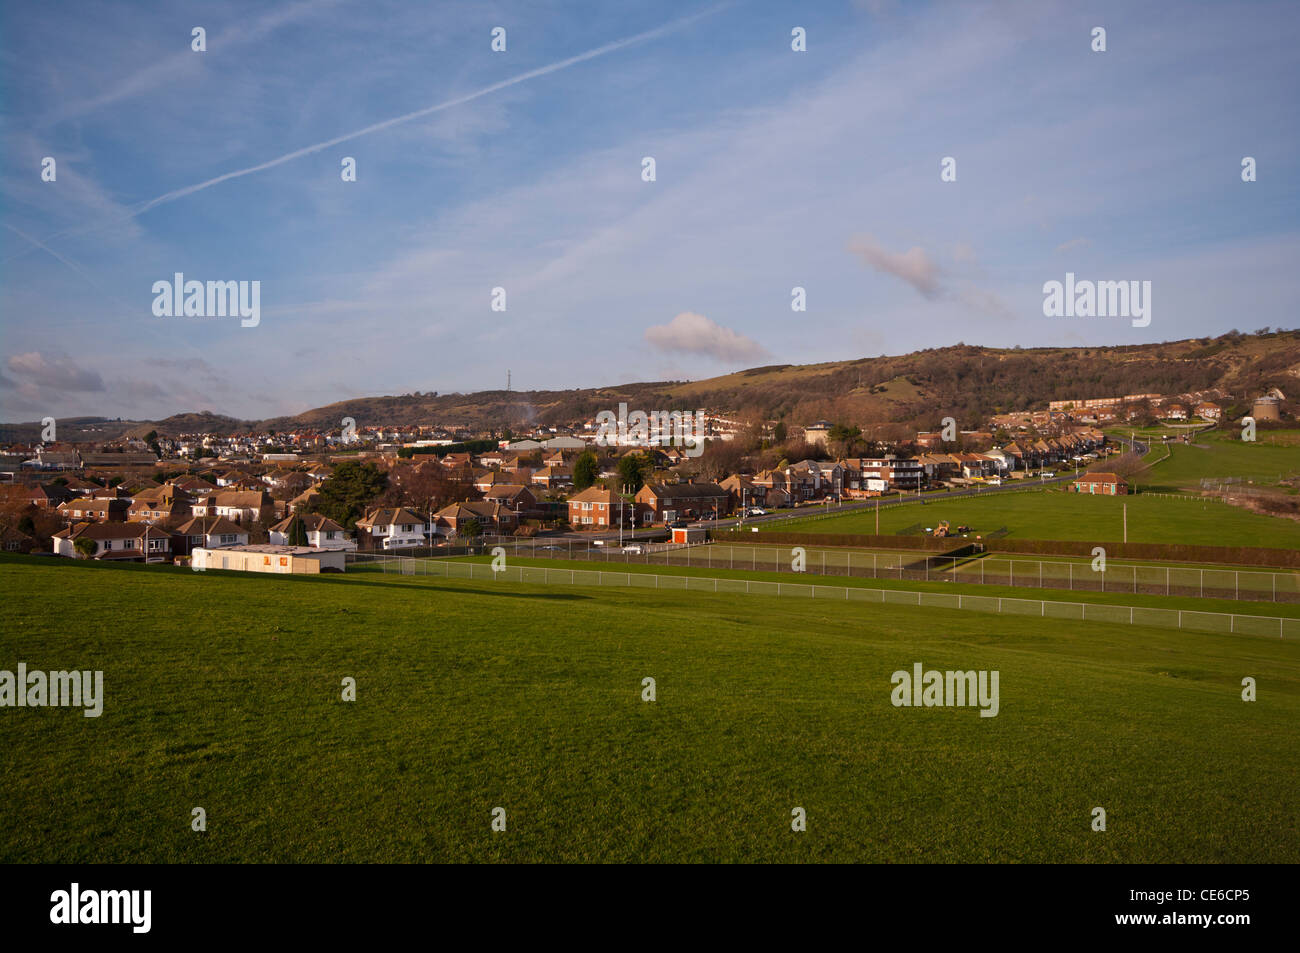 The Coastal Town Of Folkestone Kent UK as seen from the Warren Country Park - Stock Image